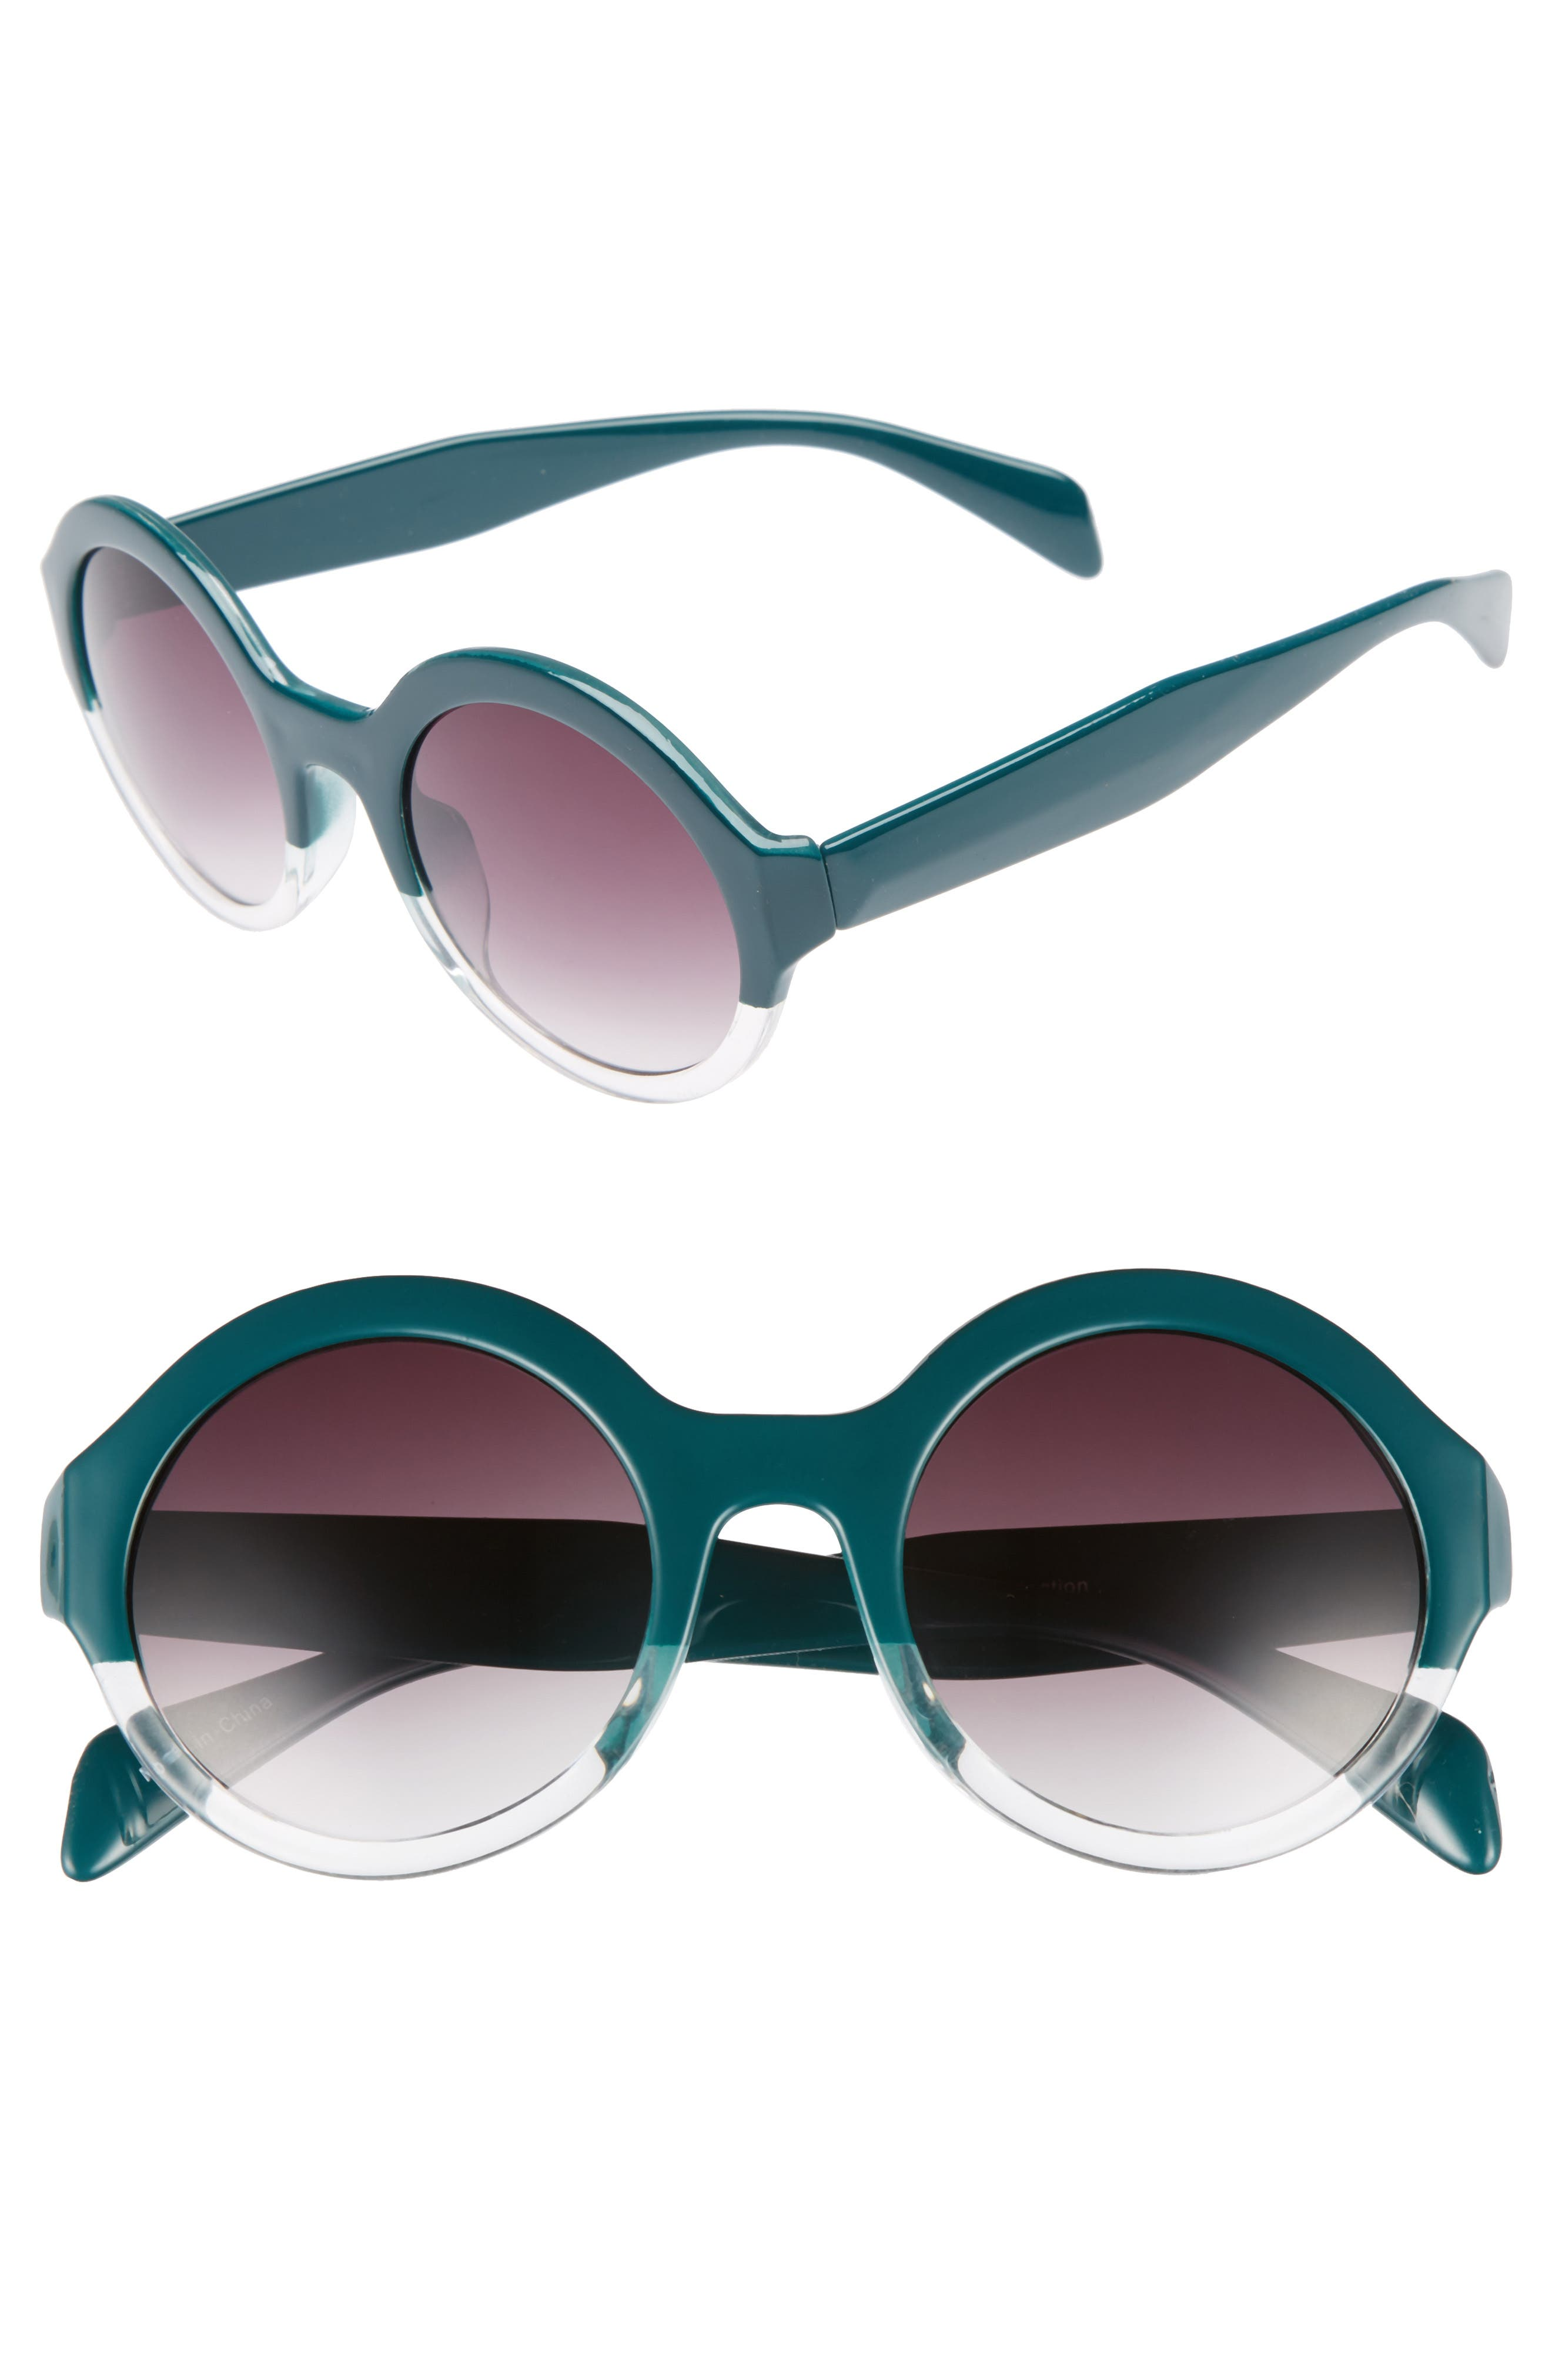 50mm Round 2 Tone Sunglasses,                             Main thumbnail 1, color,                             Emerald/ Clear